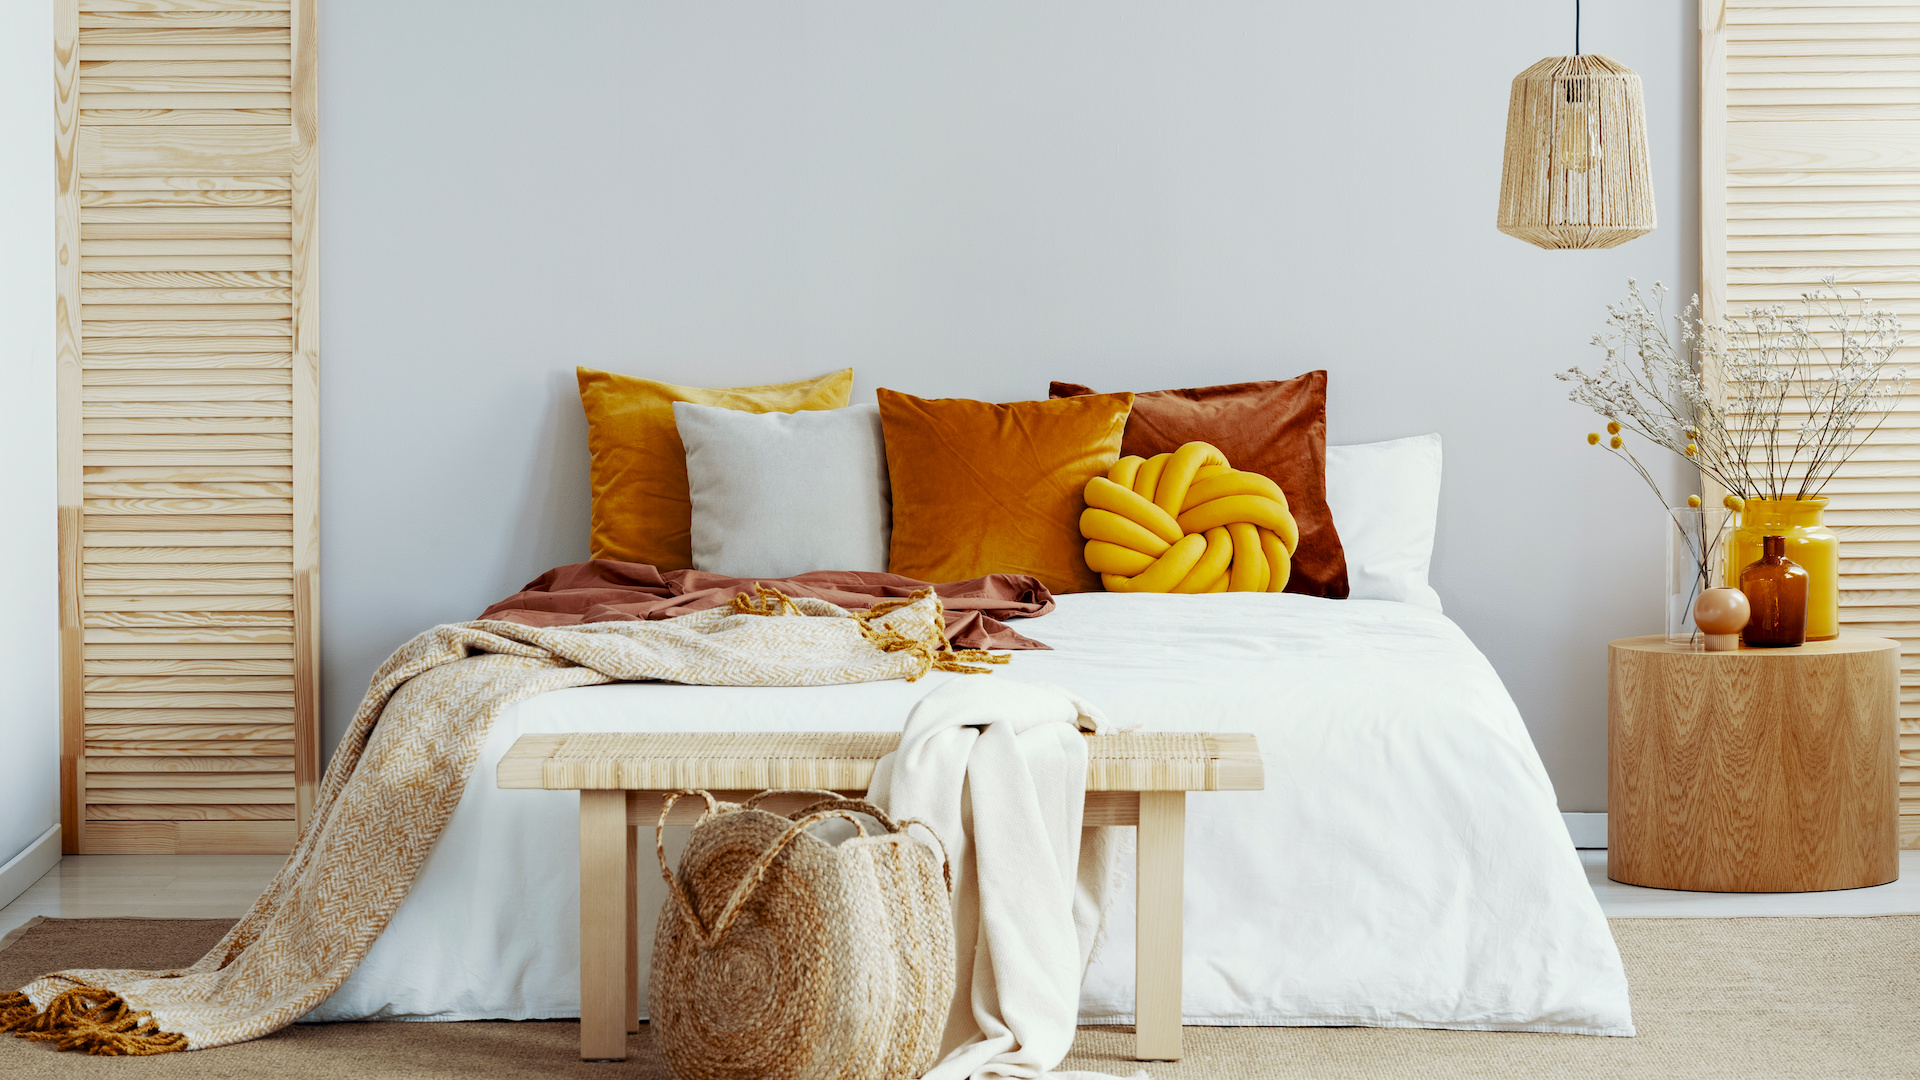 Home Decor Ideas For Any Household Stylecaster